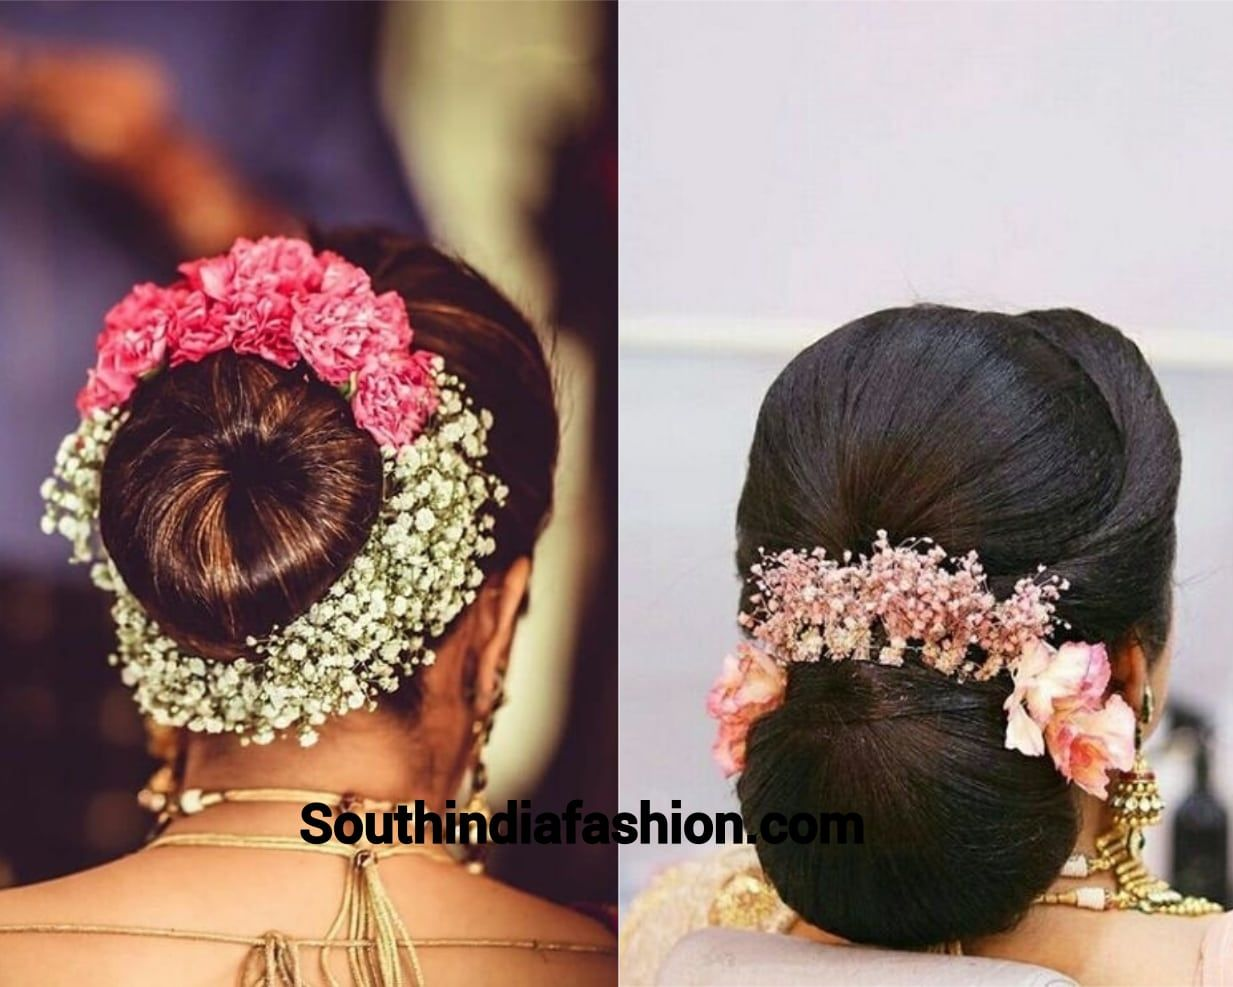 Indian Wedding Bun Hairstyle With Flowers And Gajra Indian Bun Hairstyles Wedding Bun Hairstyles Mom Hairstyles